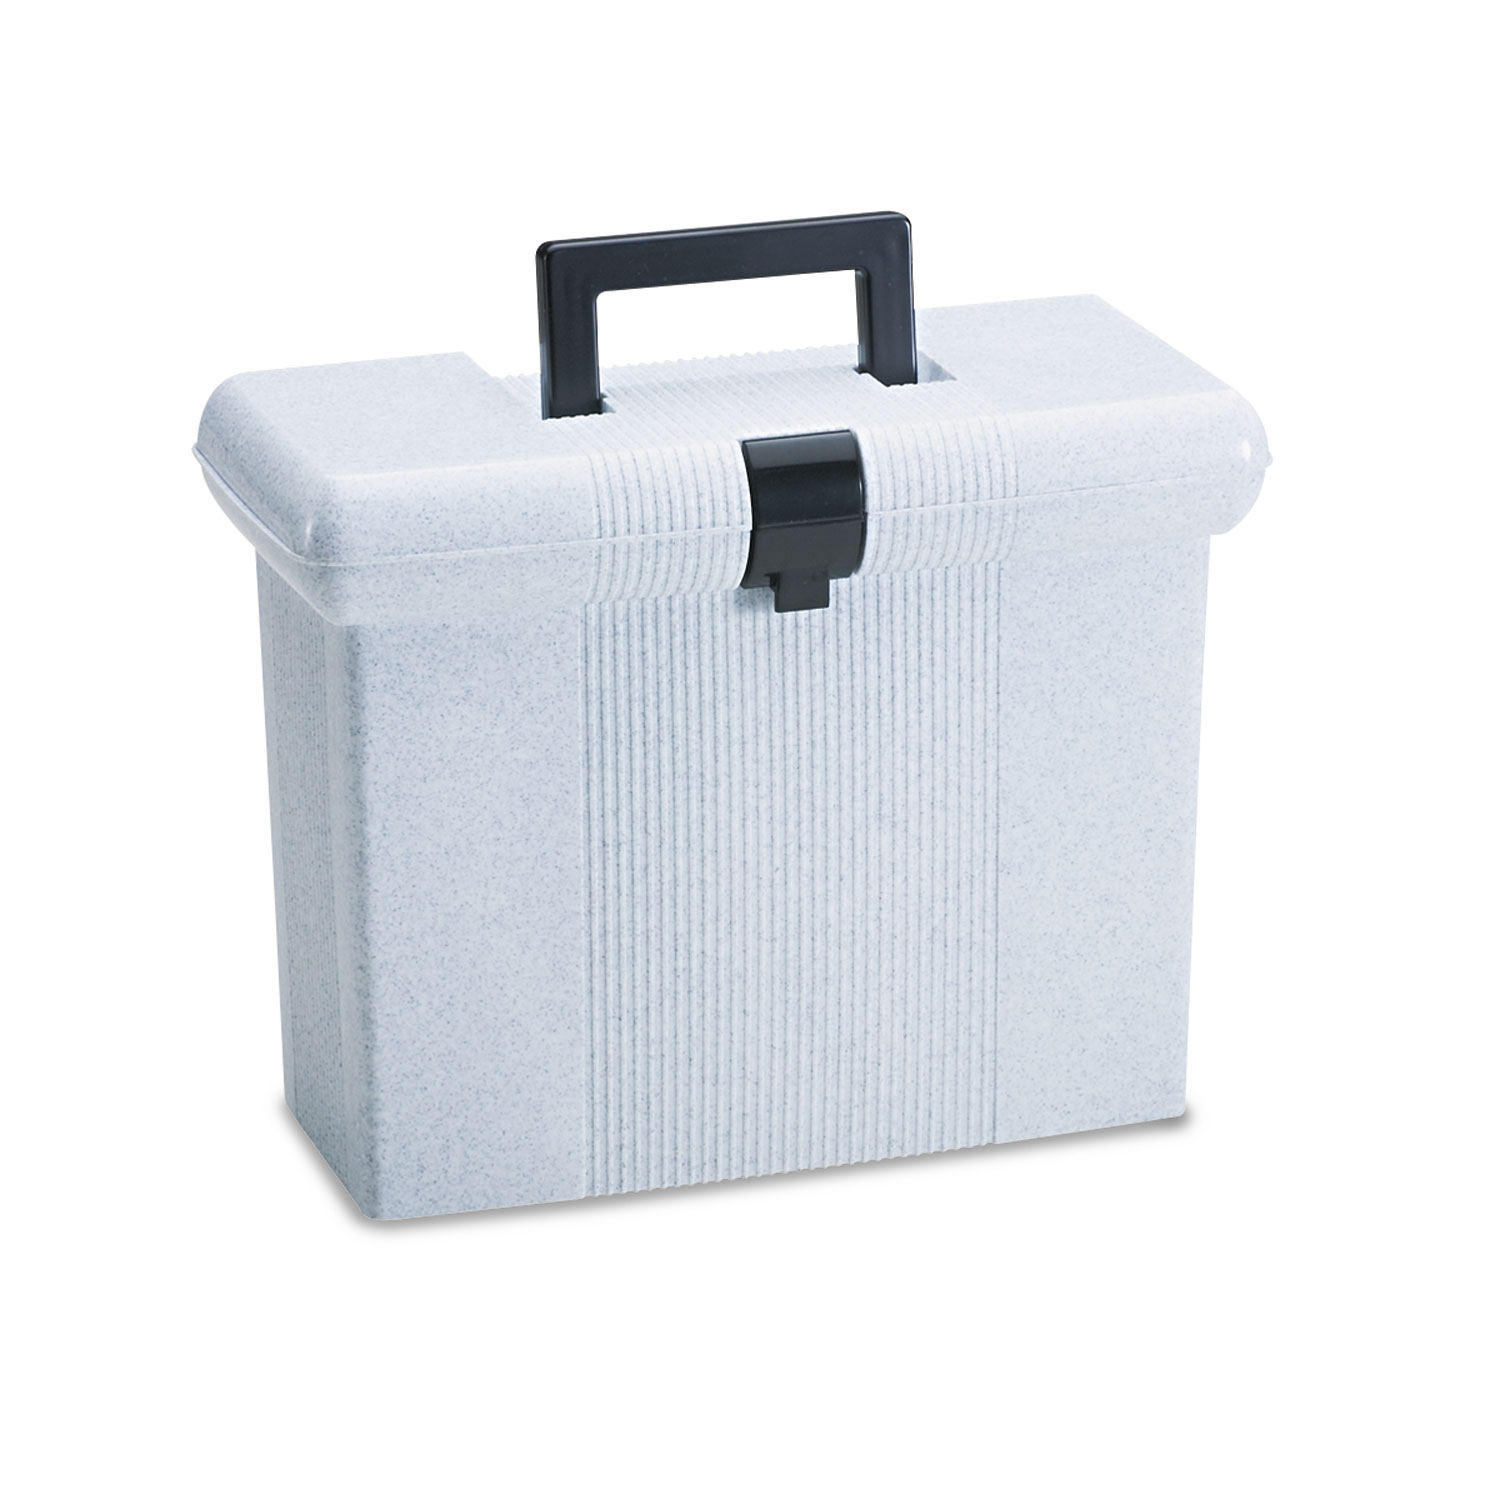 Portafile File Storage Box, Letter, Plastic, 14-7/8 x 6-1/2 x 11-7/8, Granite